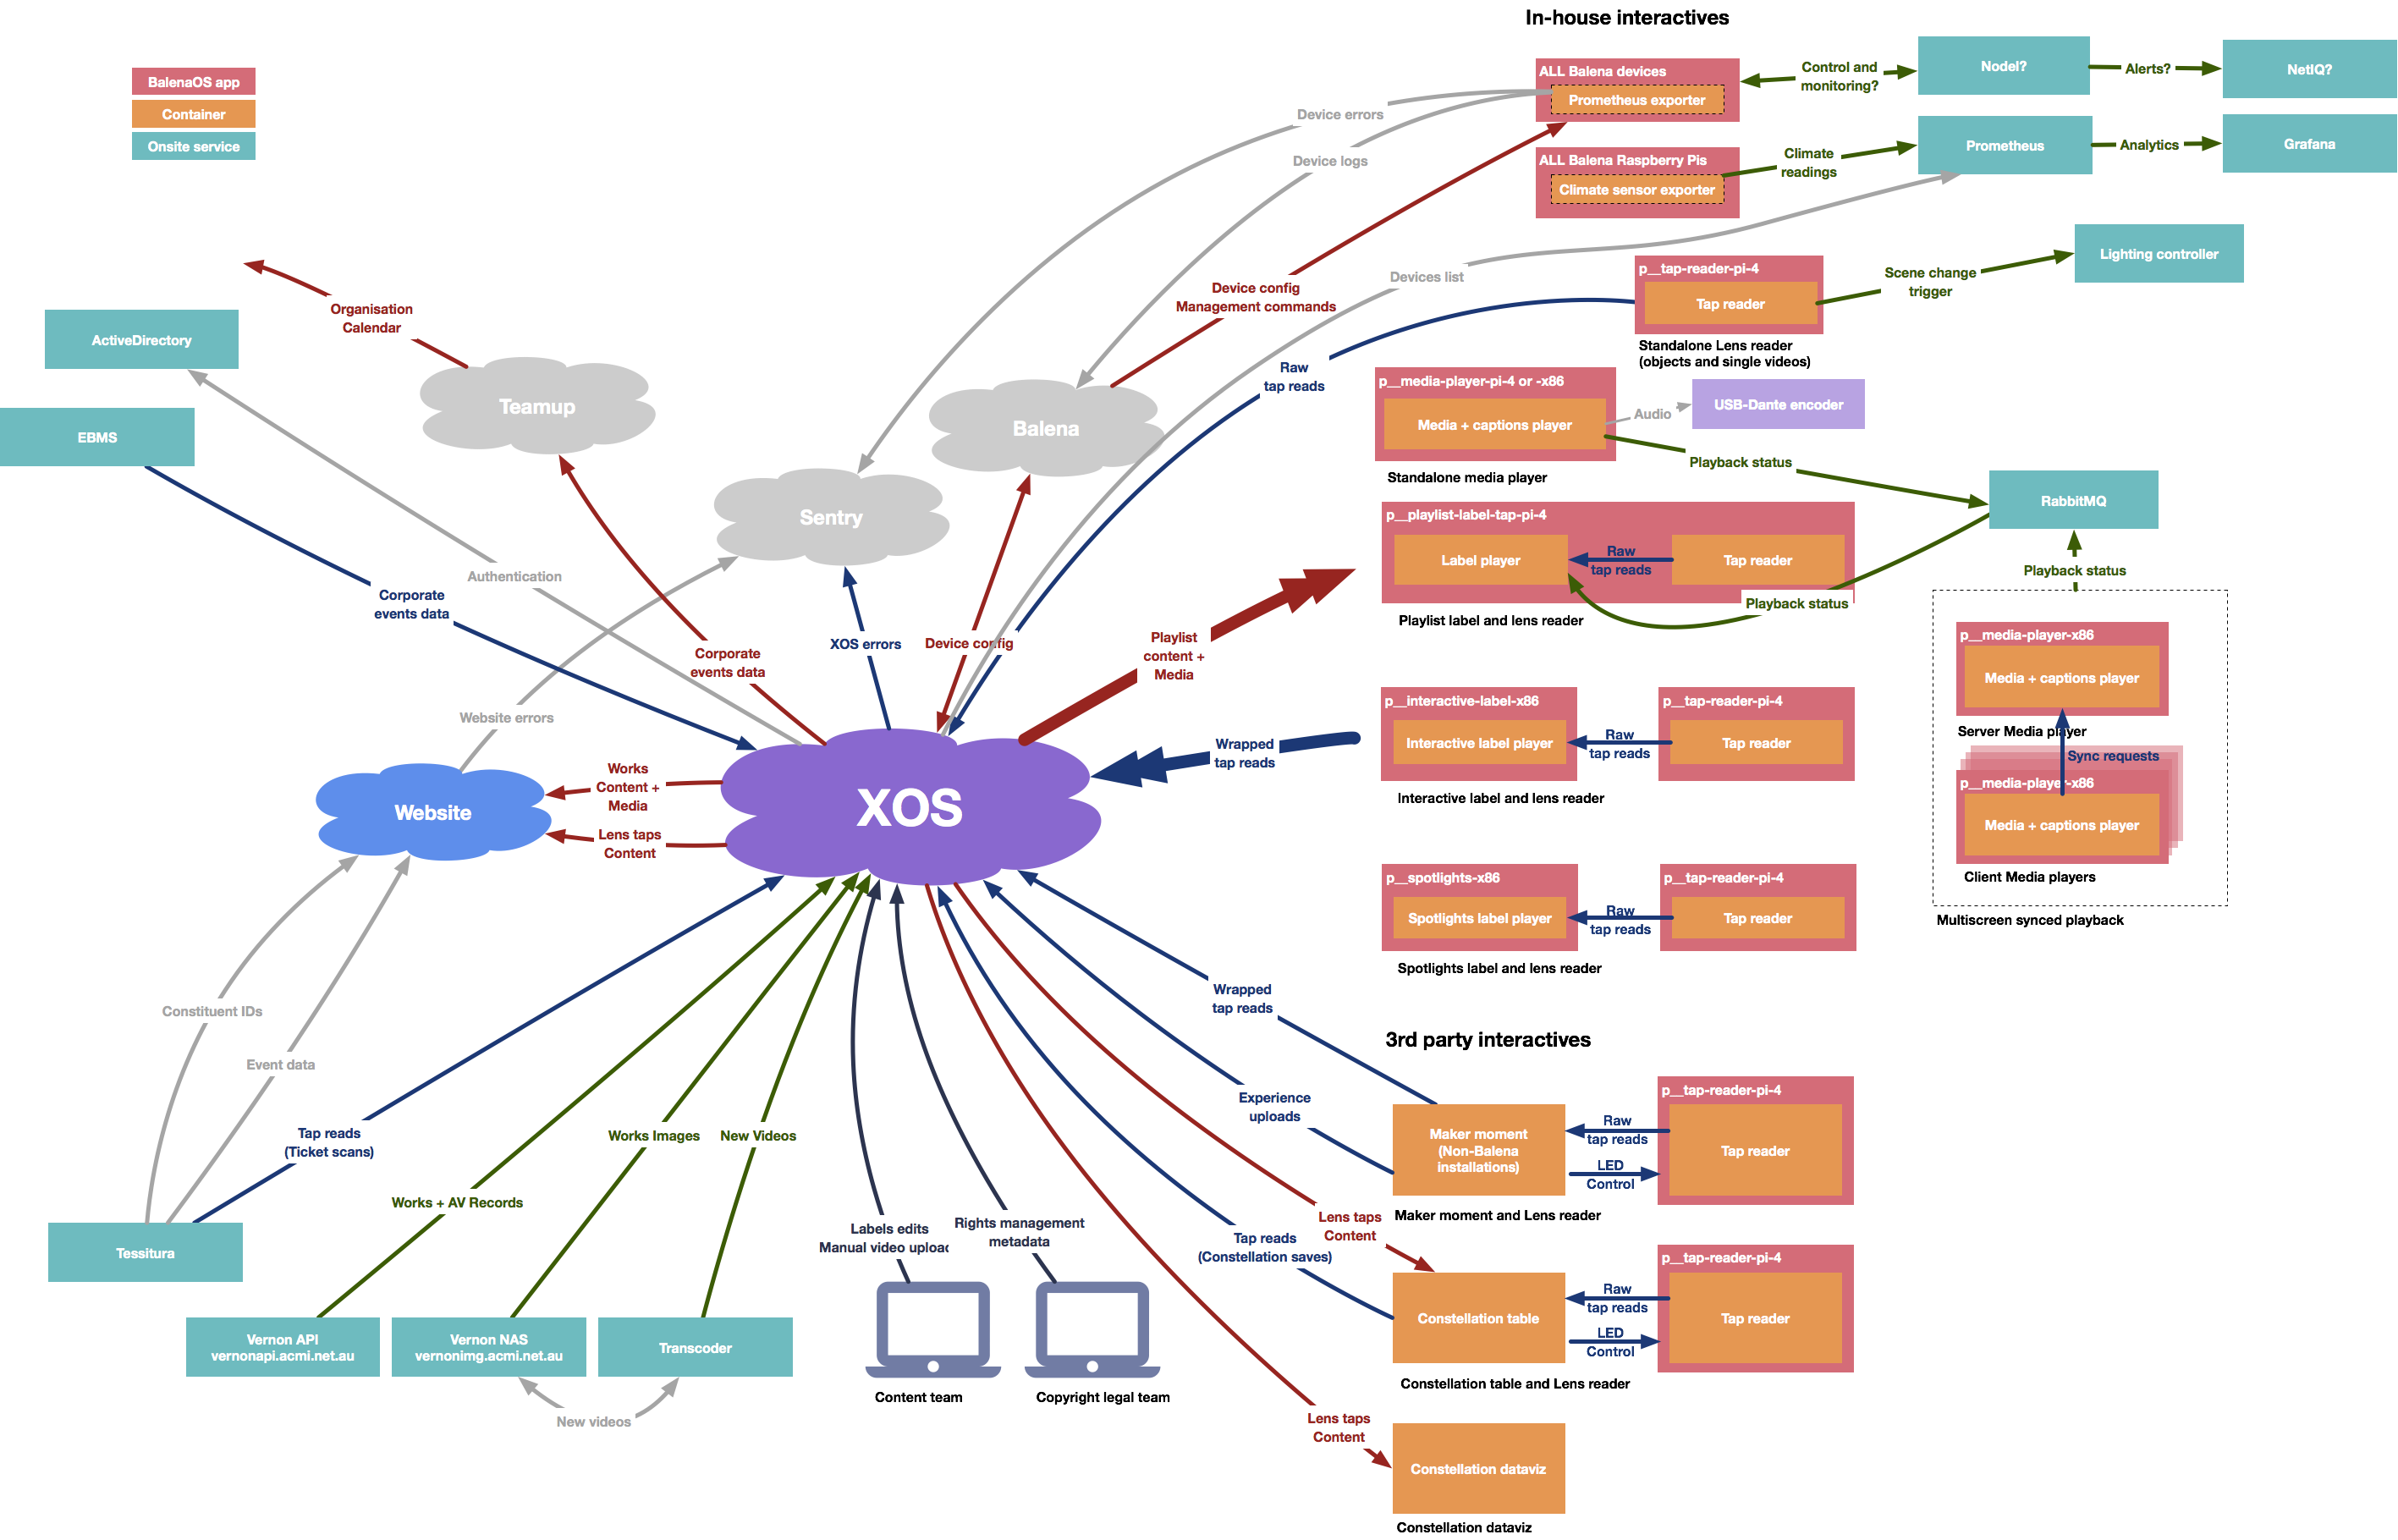 ACMI infrastructure diagram showing how XOS interacts with our technology.